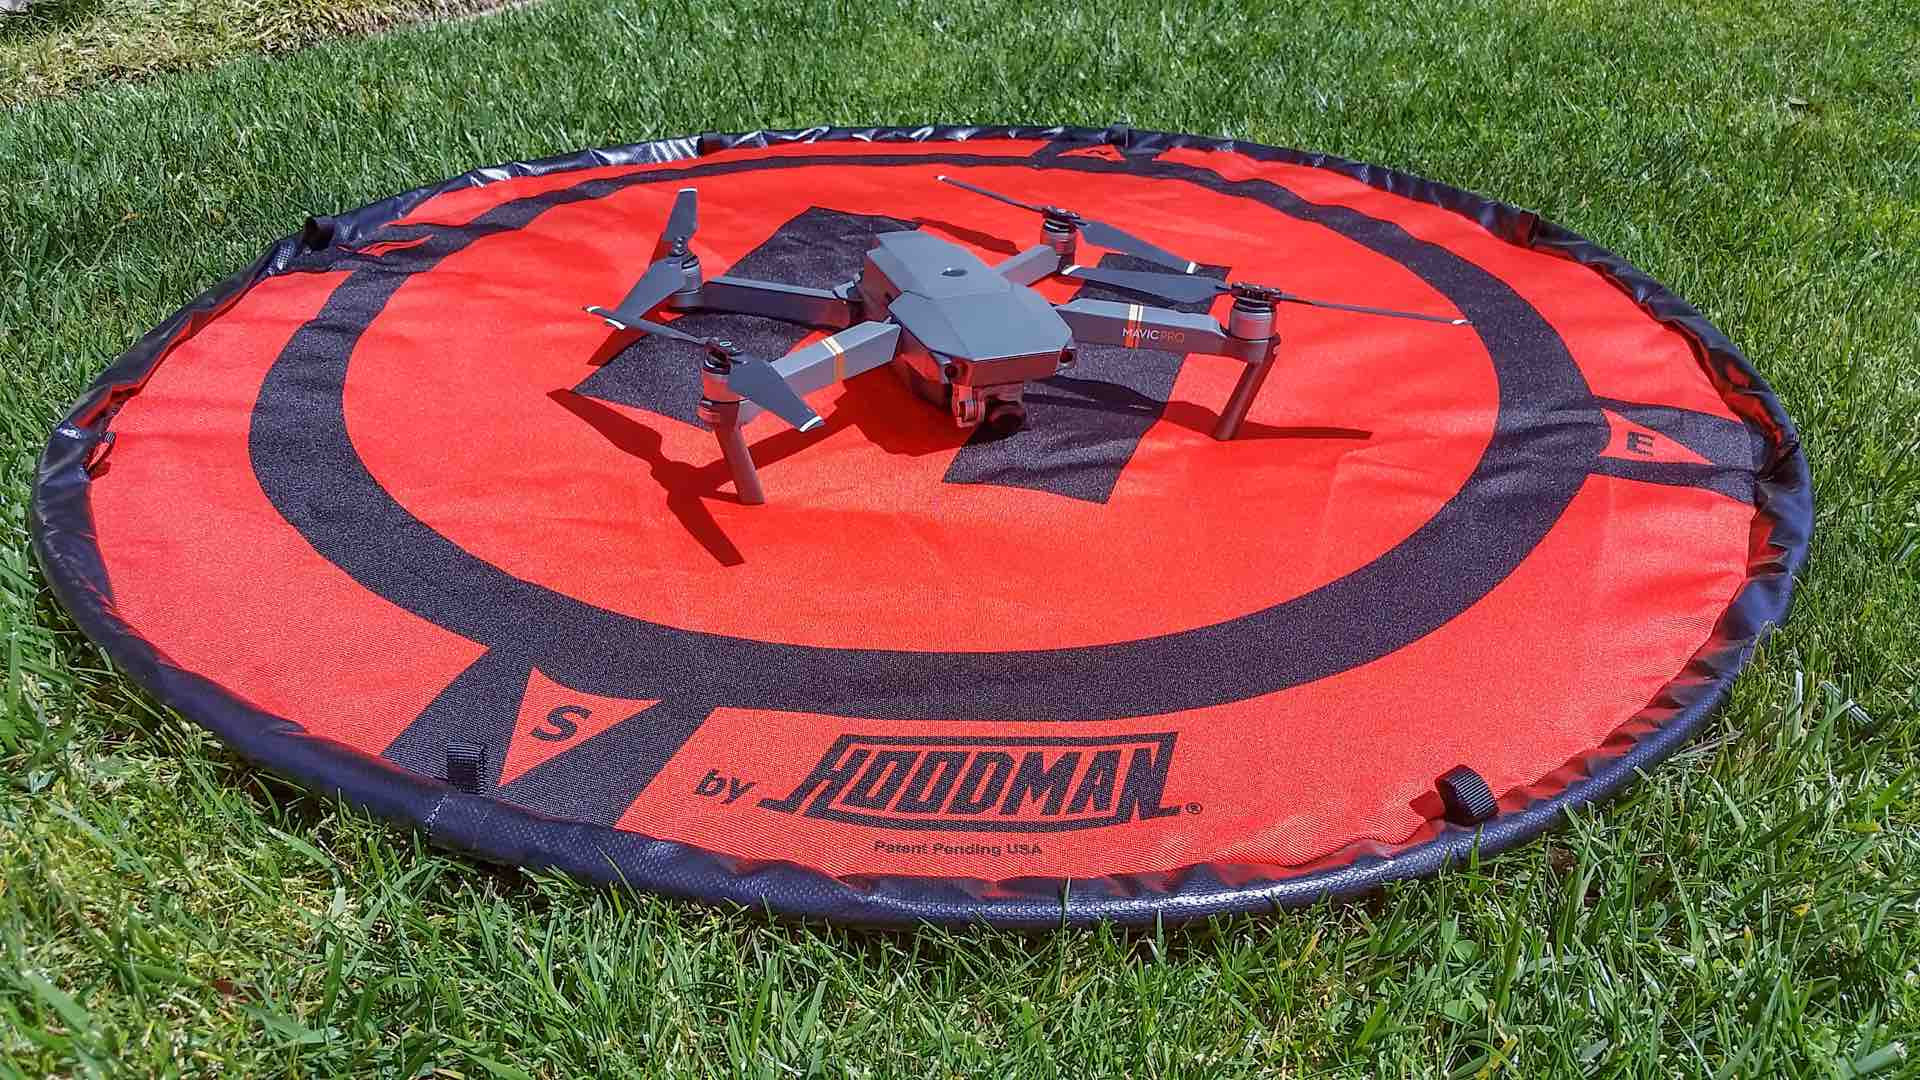 hoodman-drone-launch-and-landing-pad